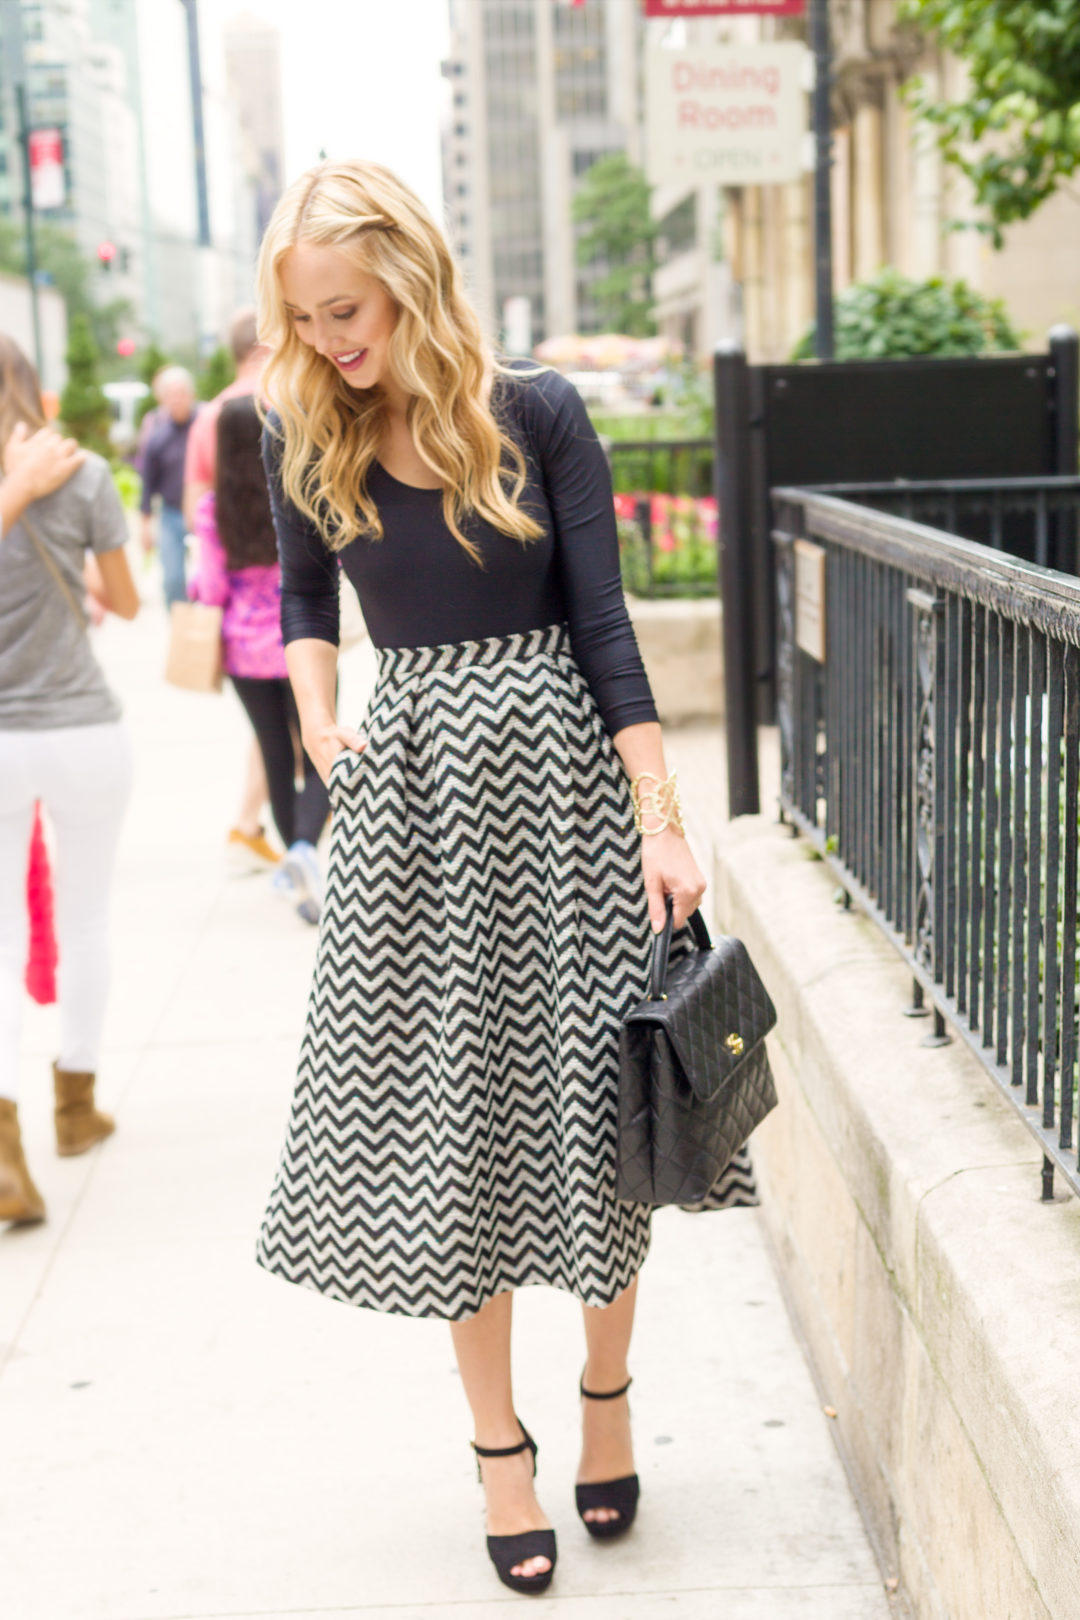 Black & White Jacquard Skirt